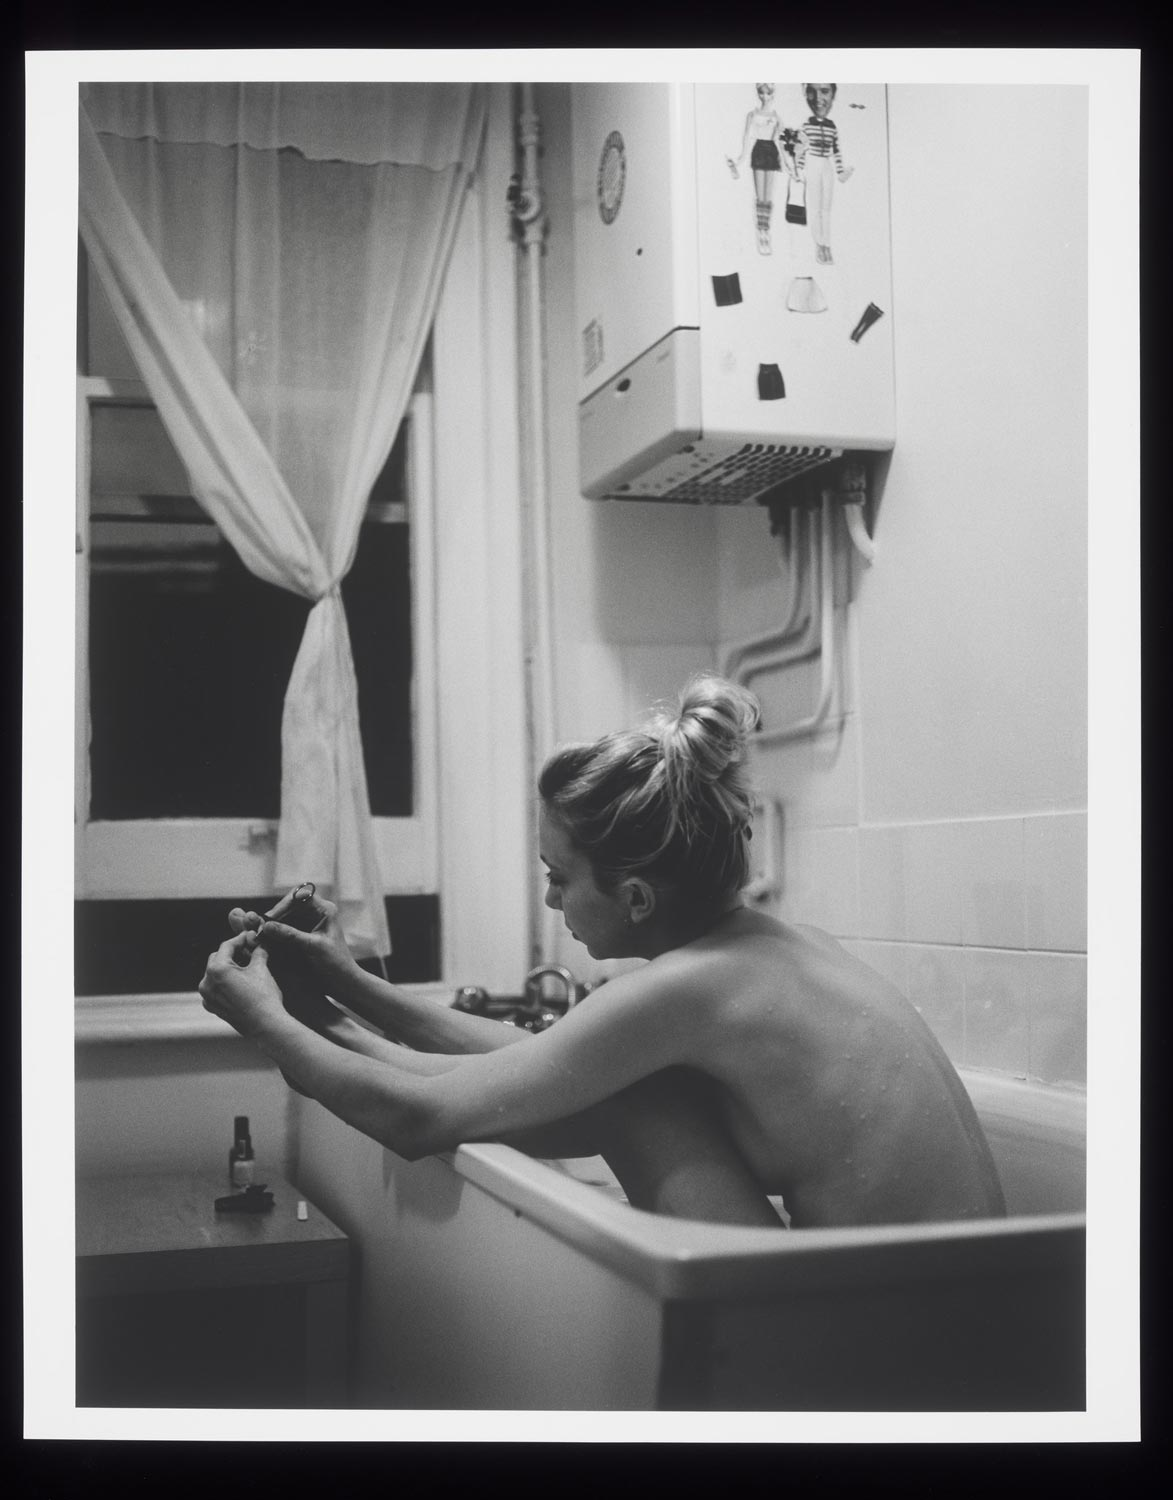 black and white photograph showing woman in a bath holding her foot